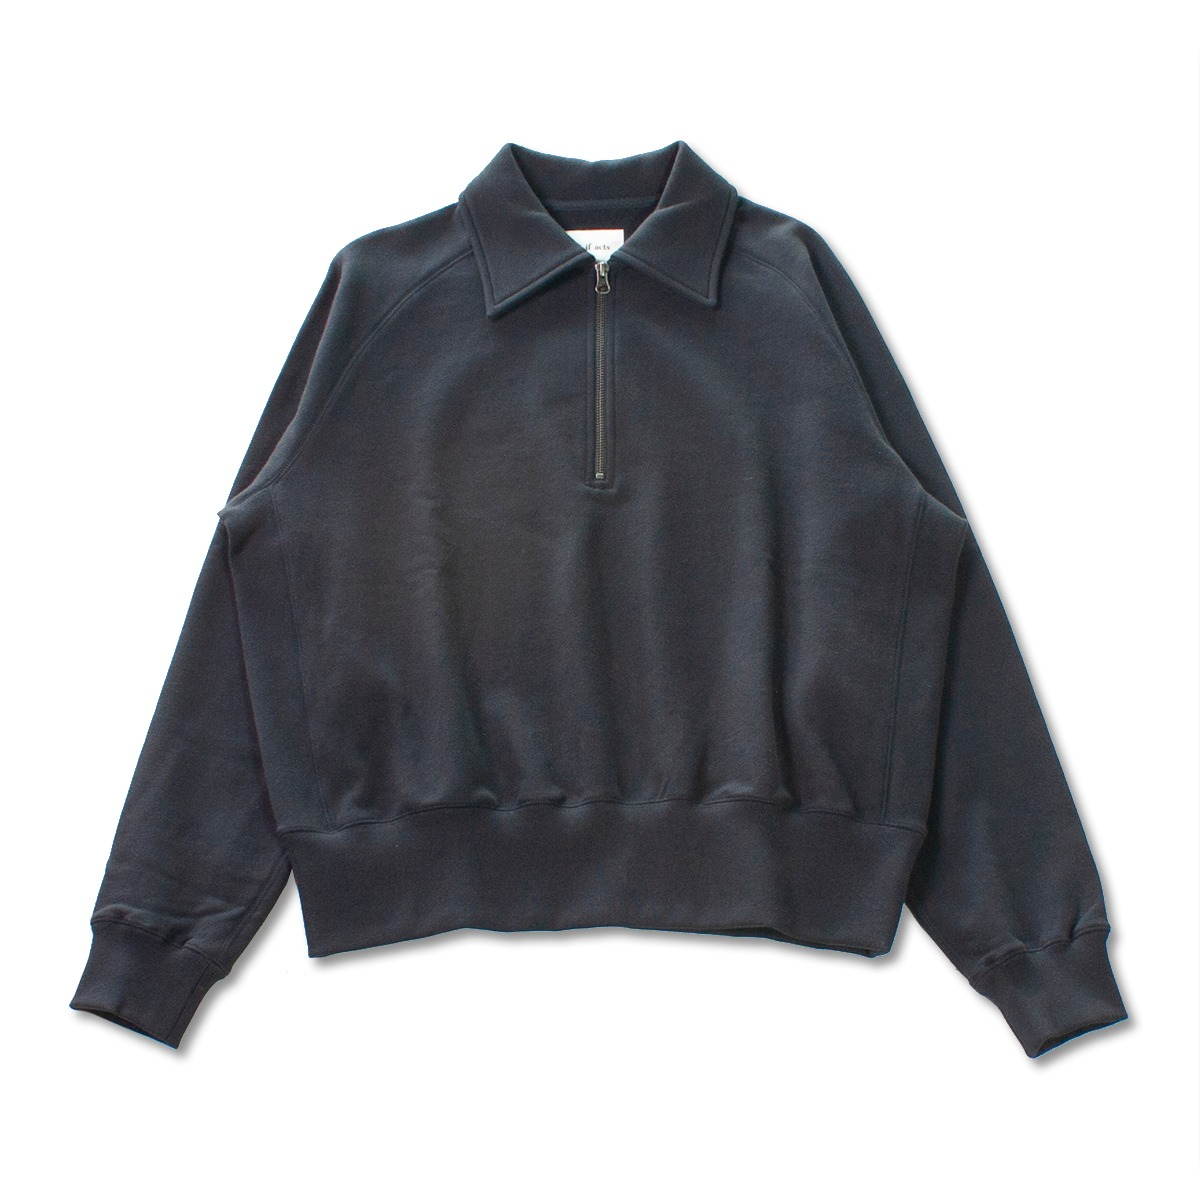 [ART IF ACTS] HALF ZIPUP SWEAT SHIRT 'DARK NAVY'